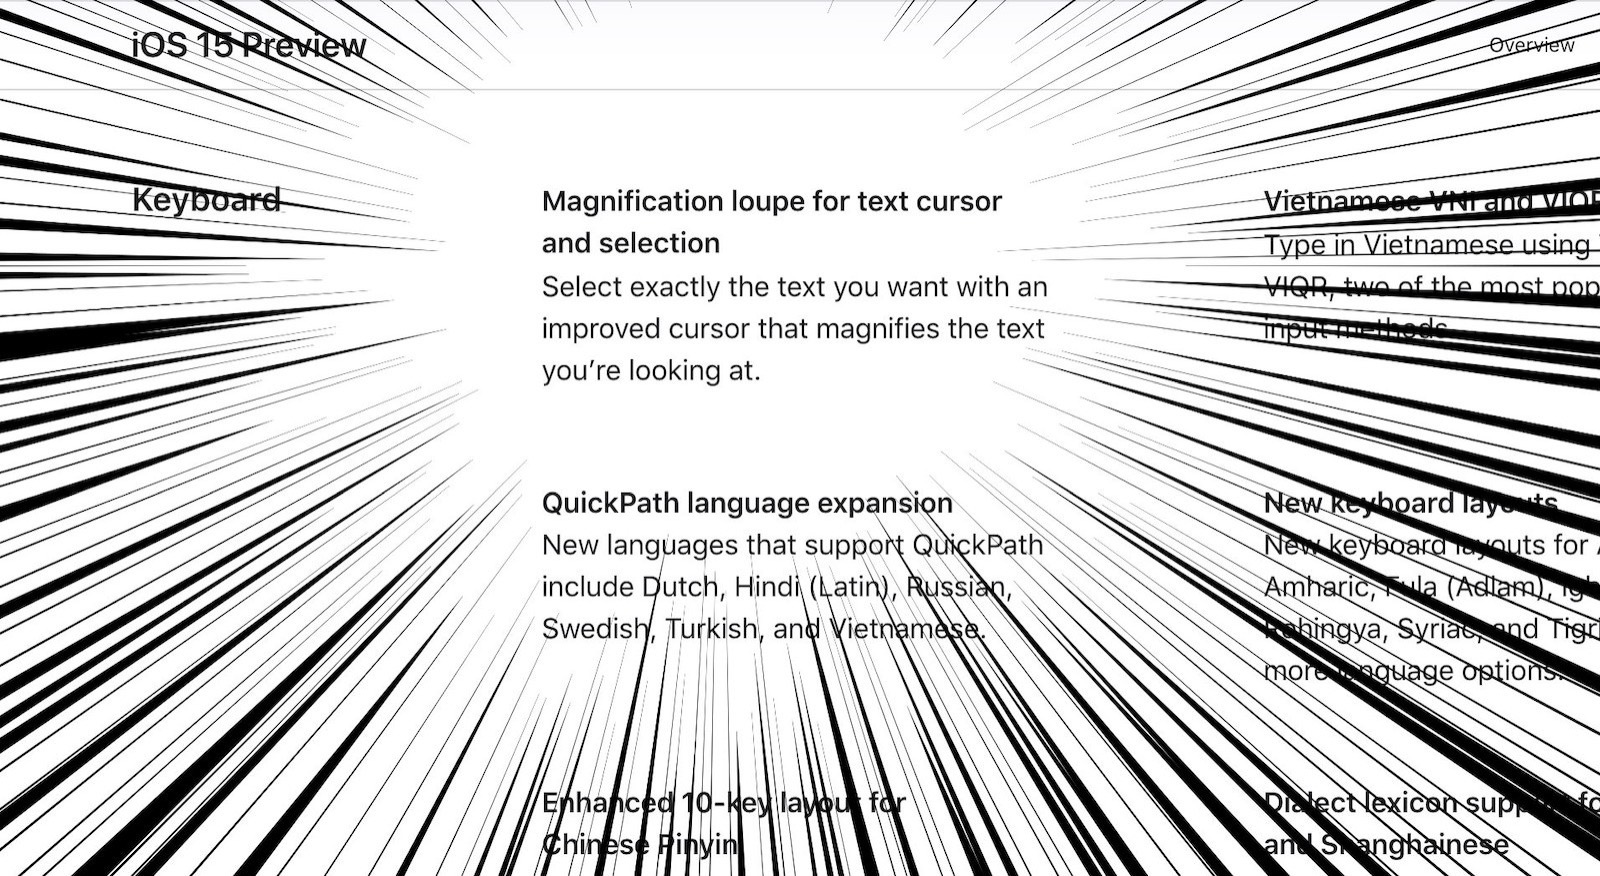 Magnification lope for text cursor